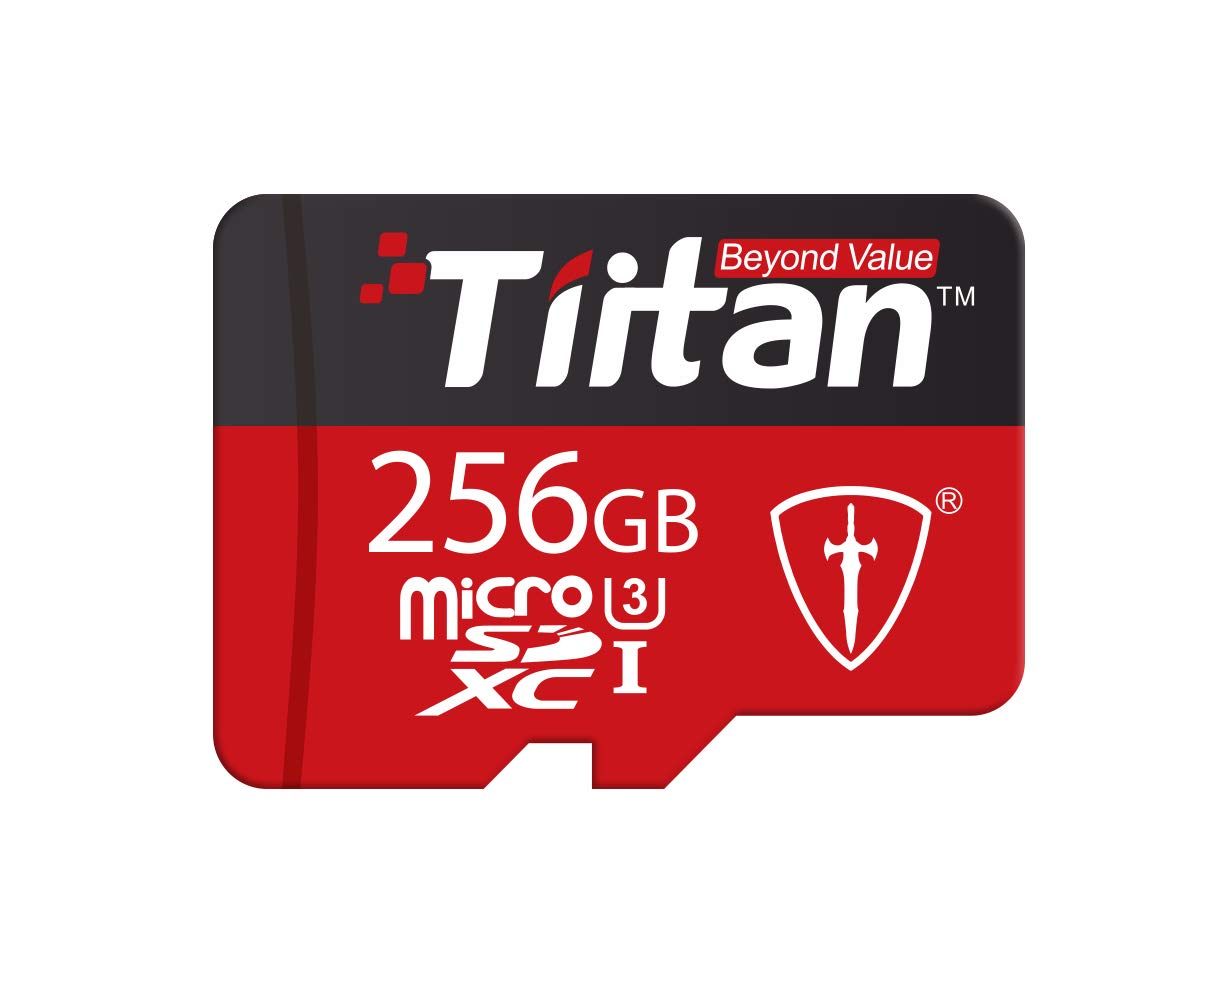 TIITAN 256GB UHS Class 3 Microsdxc Memory Card With Adapter